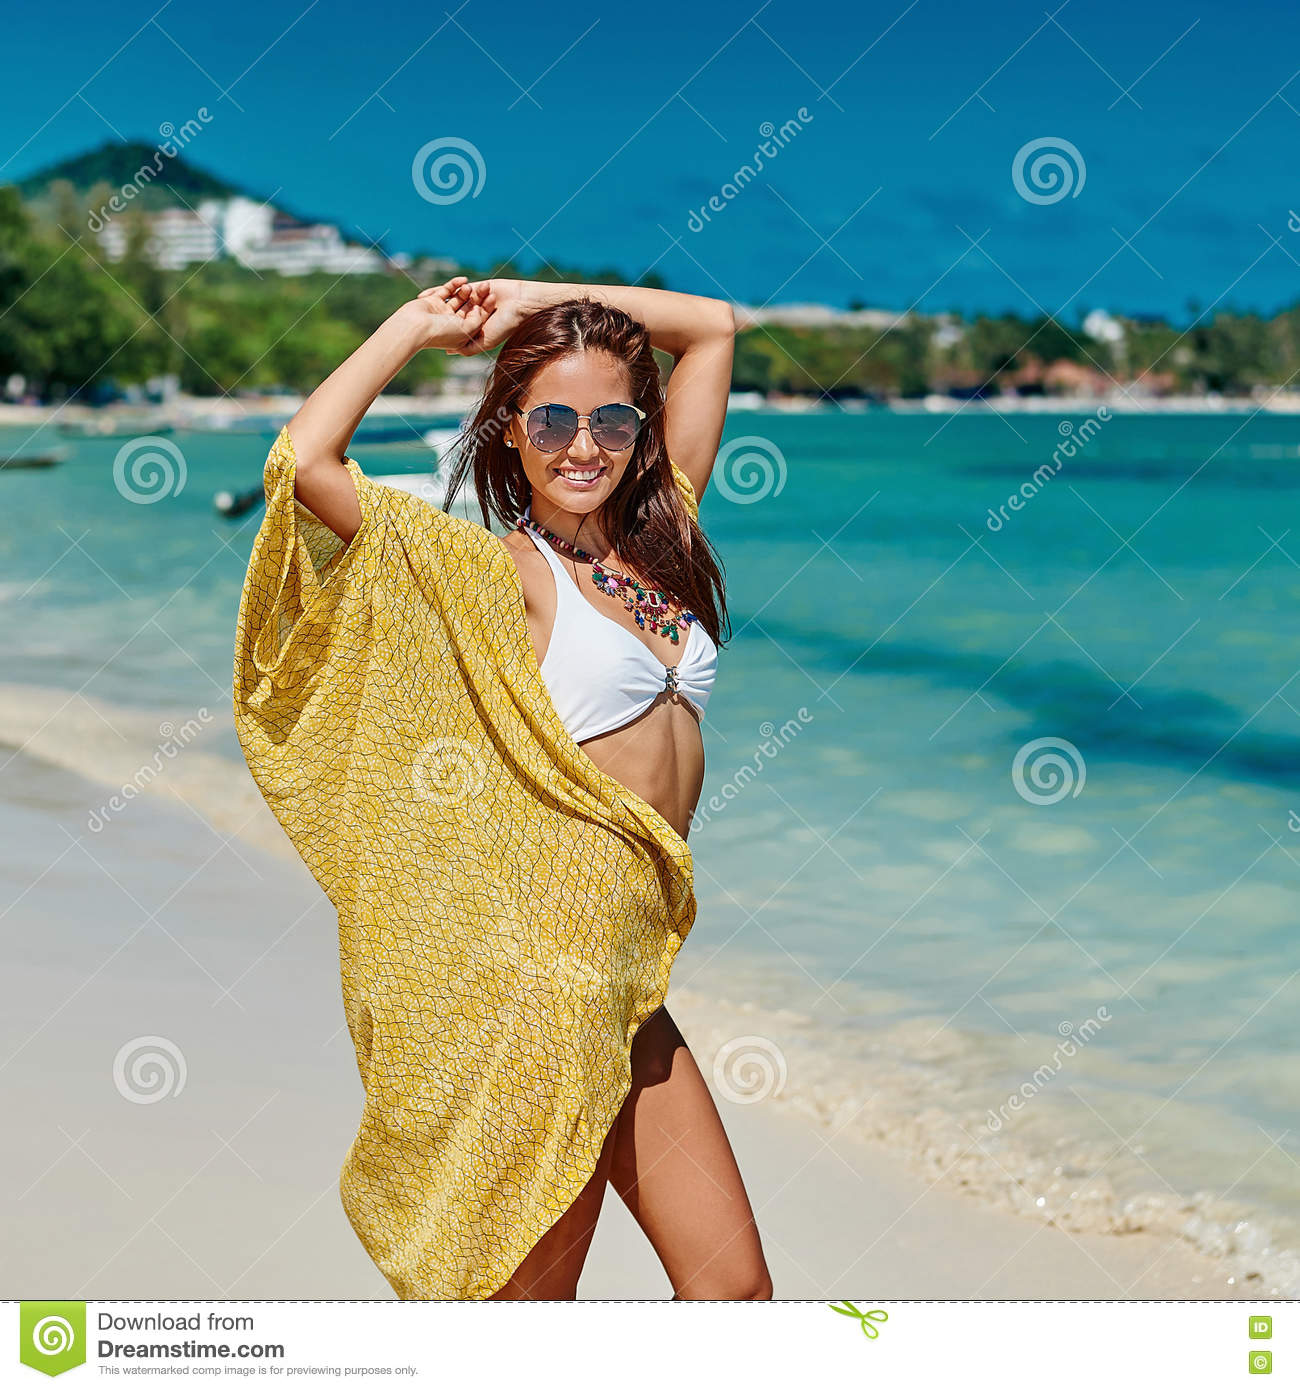 Woman Enjoying At Beach Stock Image Image Of Pleasure: Summer Portrait Of Young Pretty Woman Having Fun On A